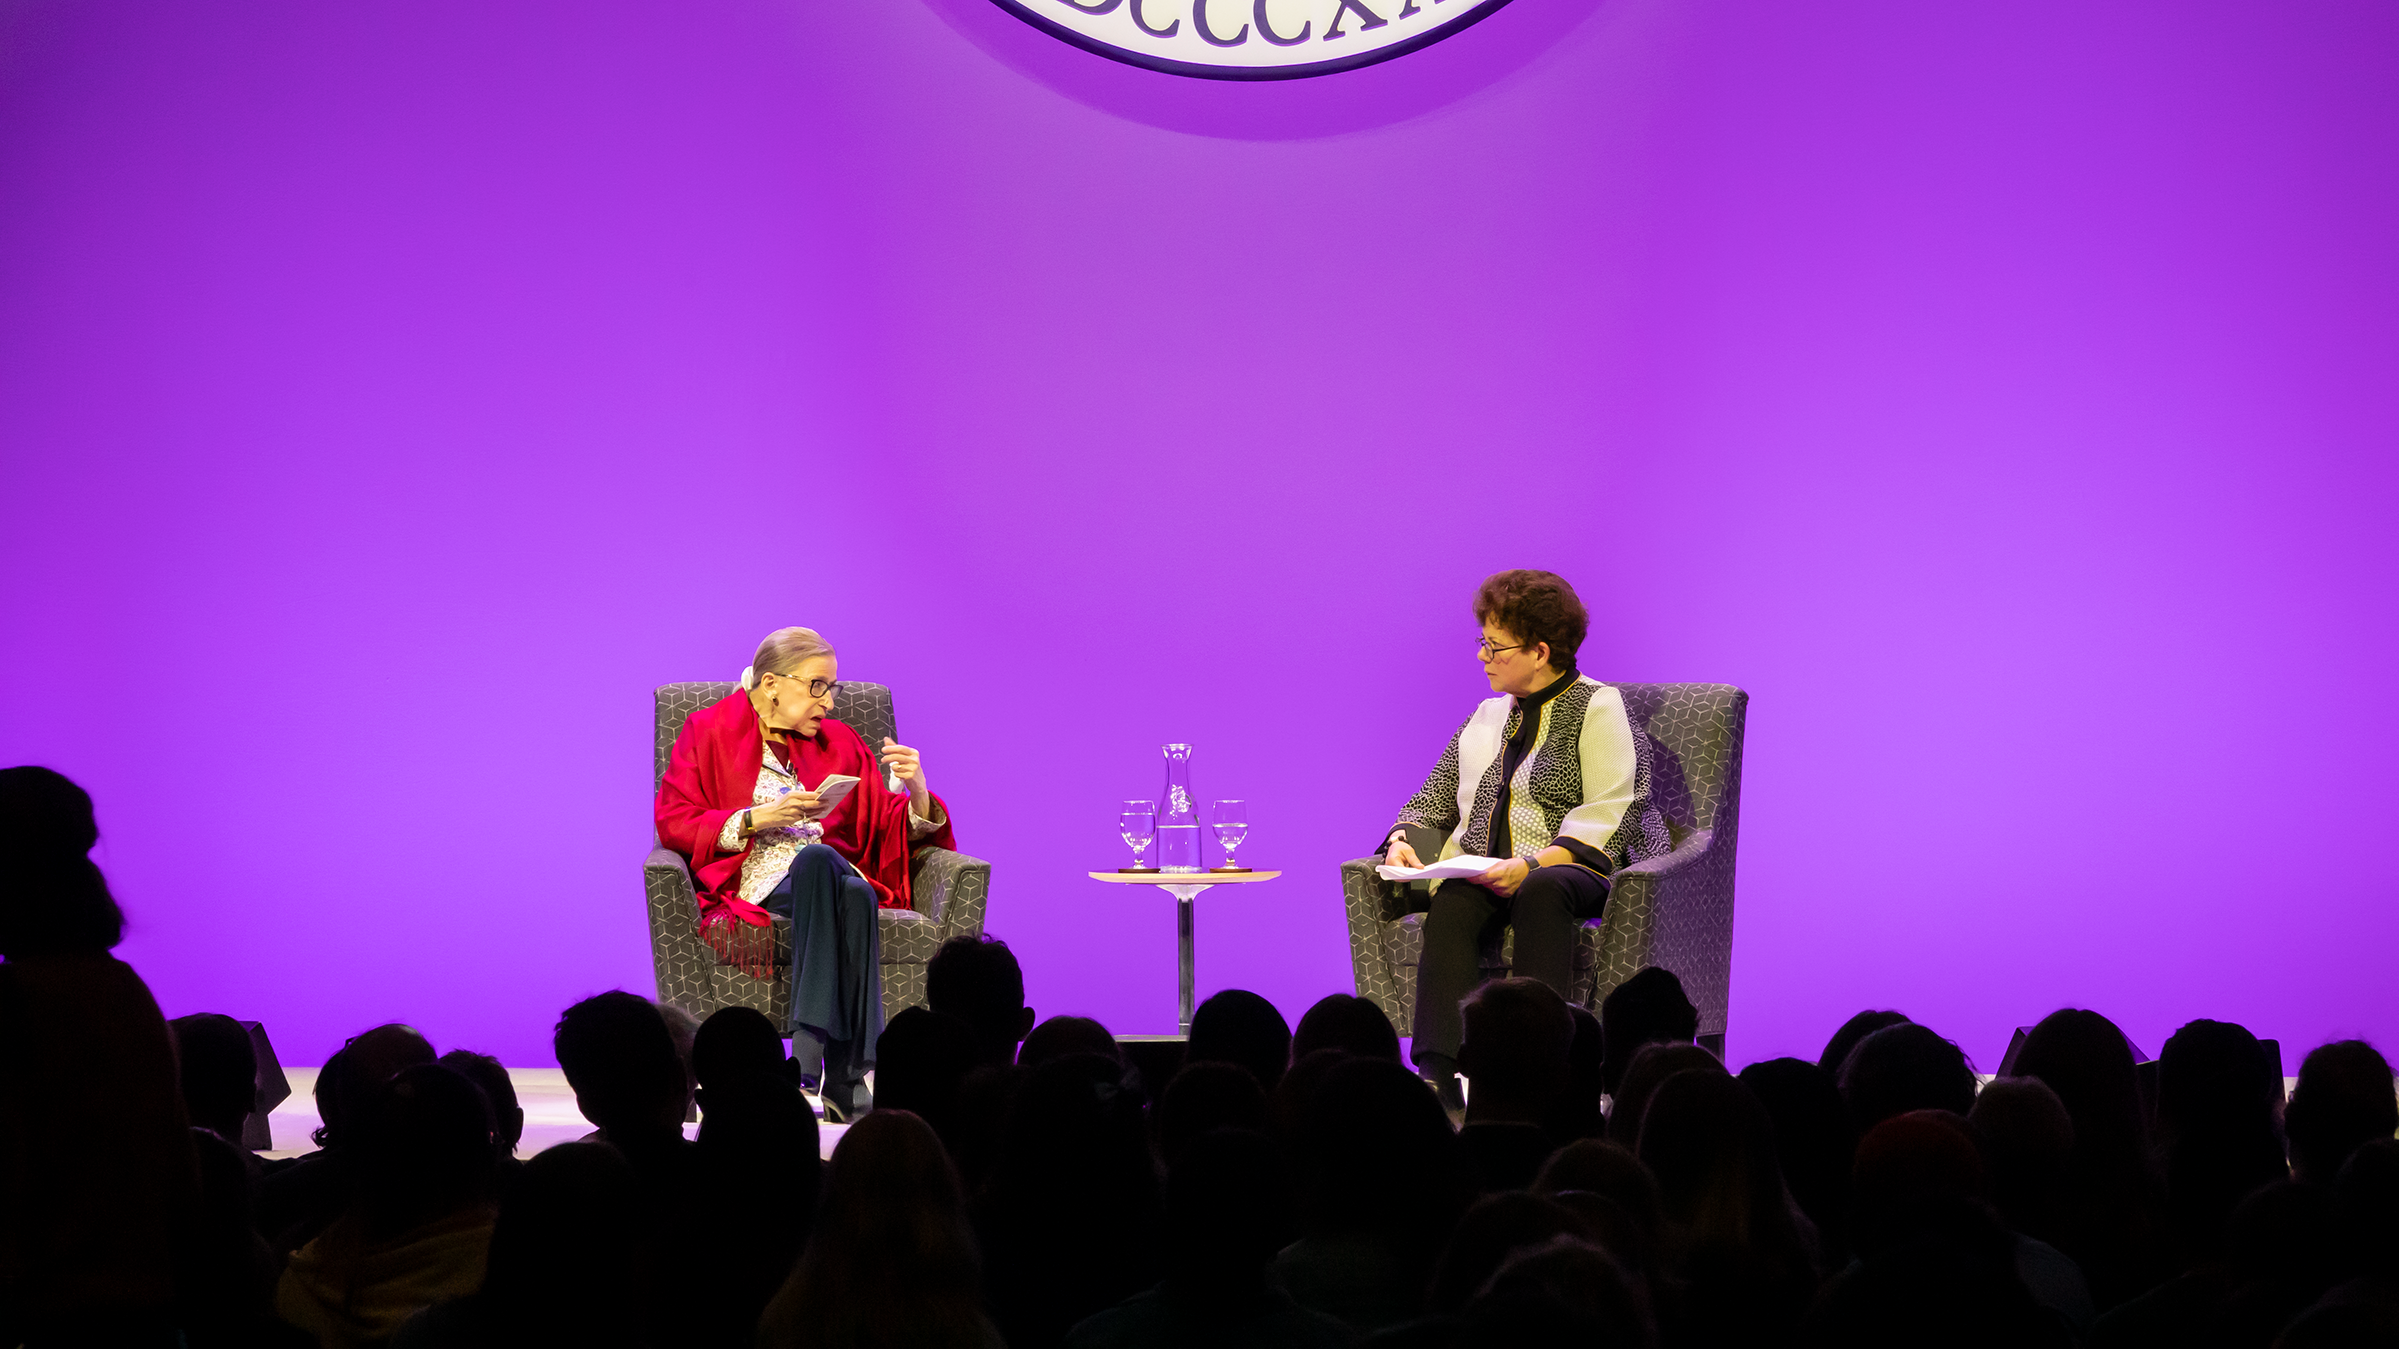 A photo of Ruth Bader Ginsburg speaking with President Biddy Martin on stage against a purple background